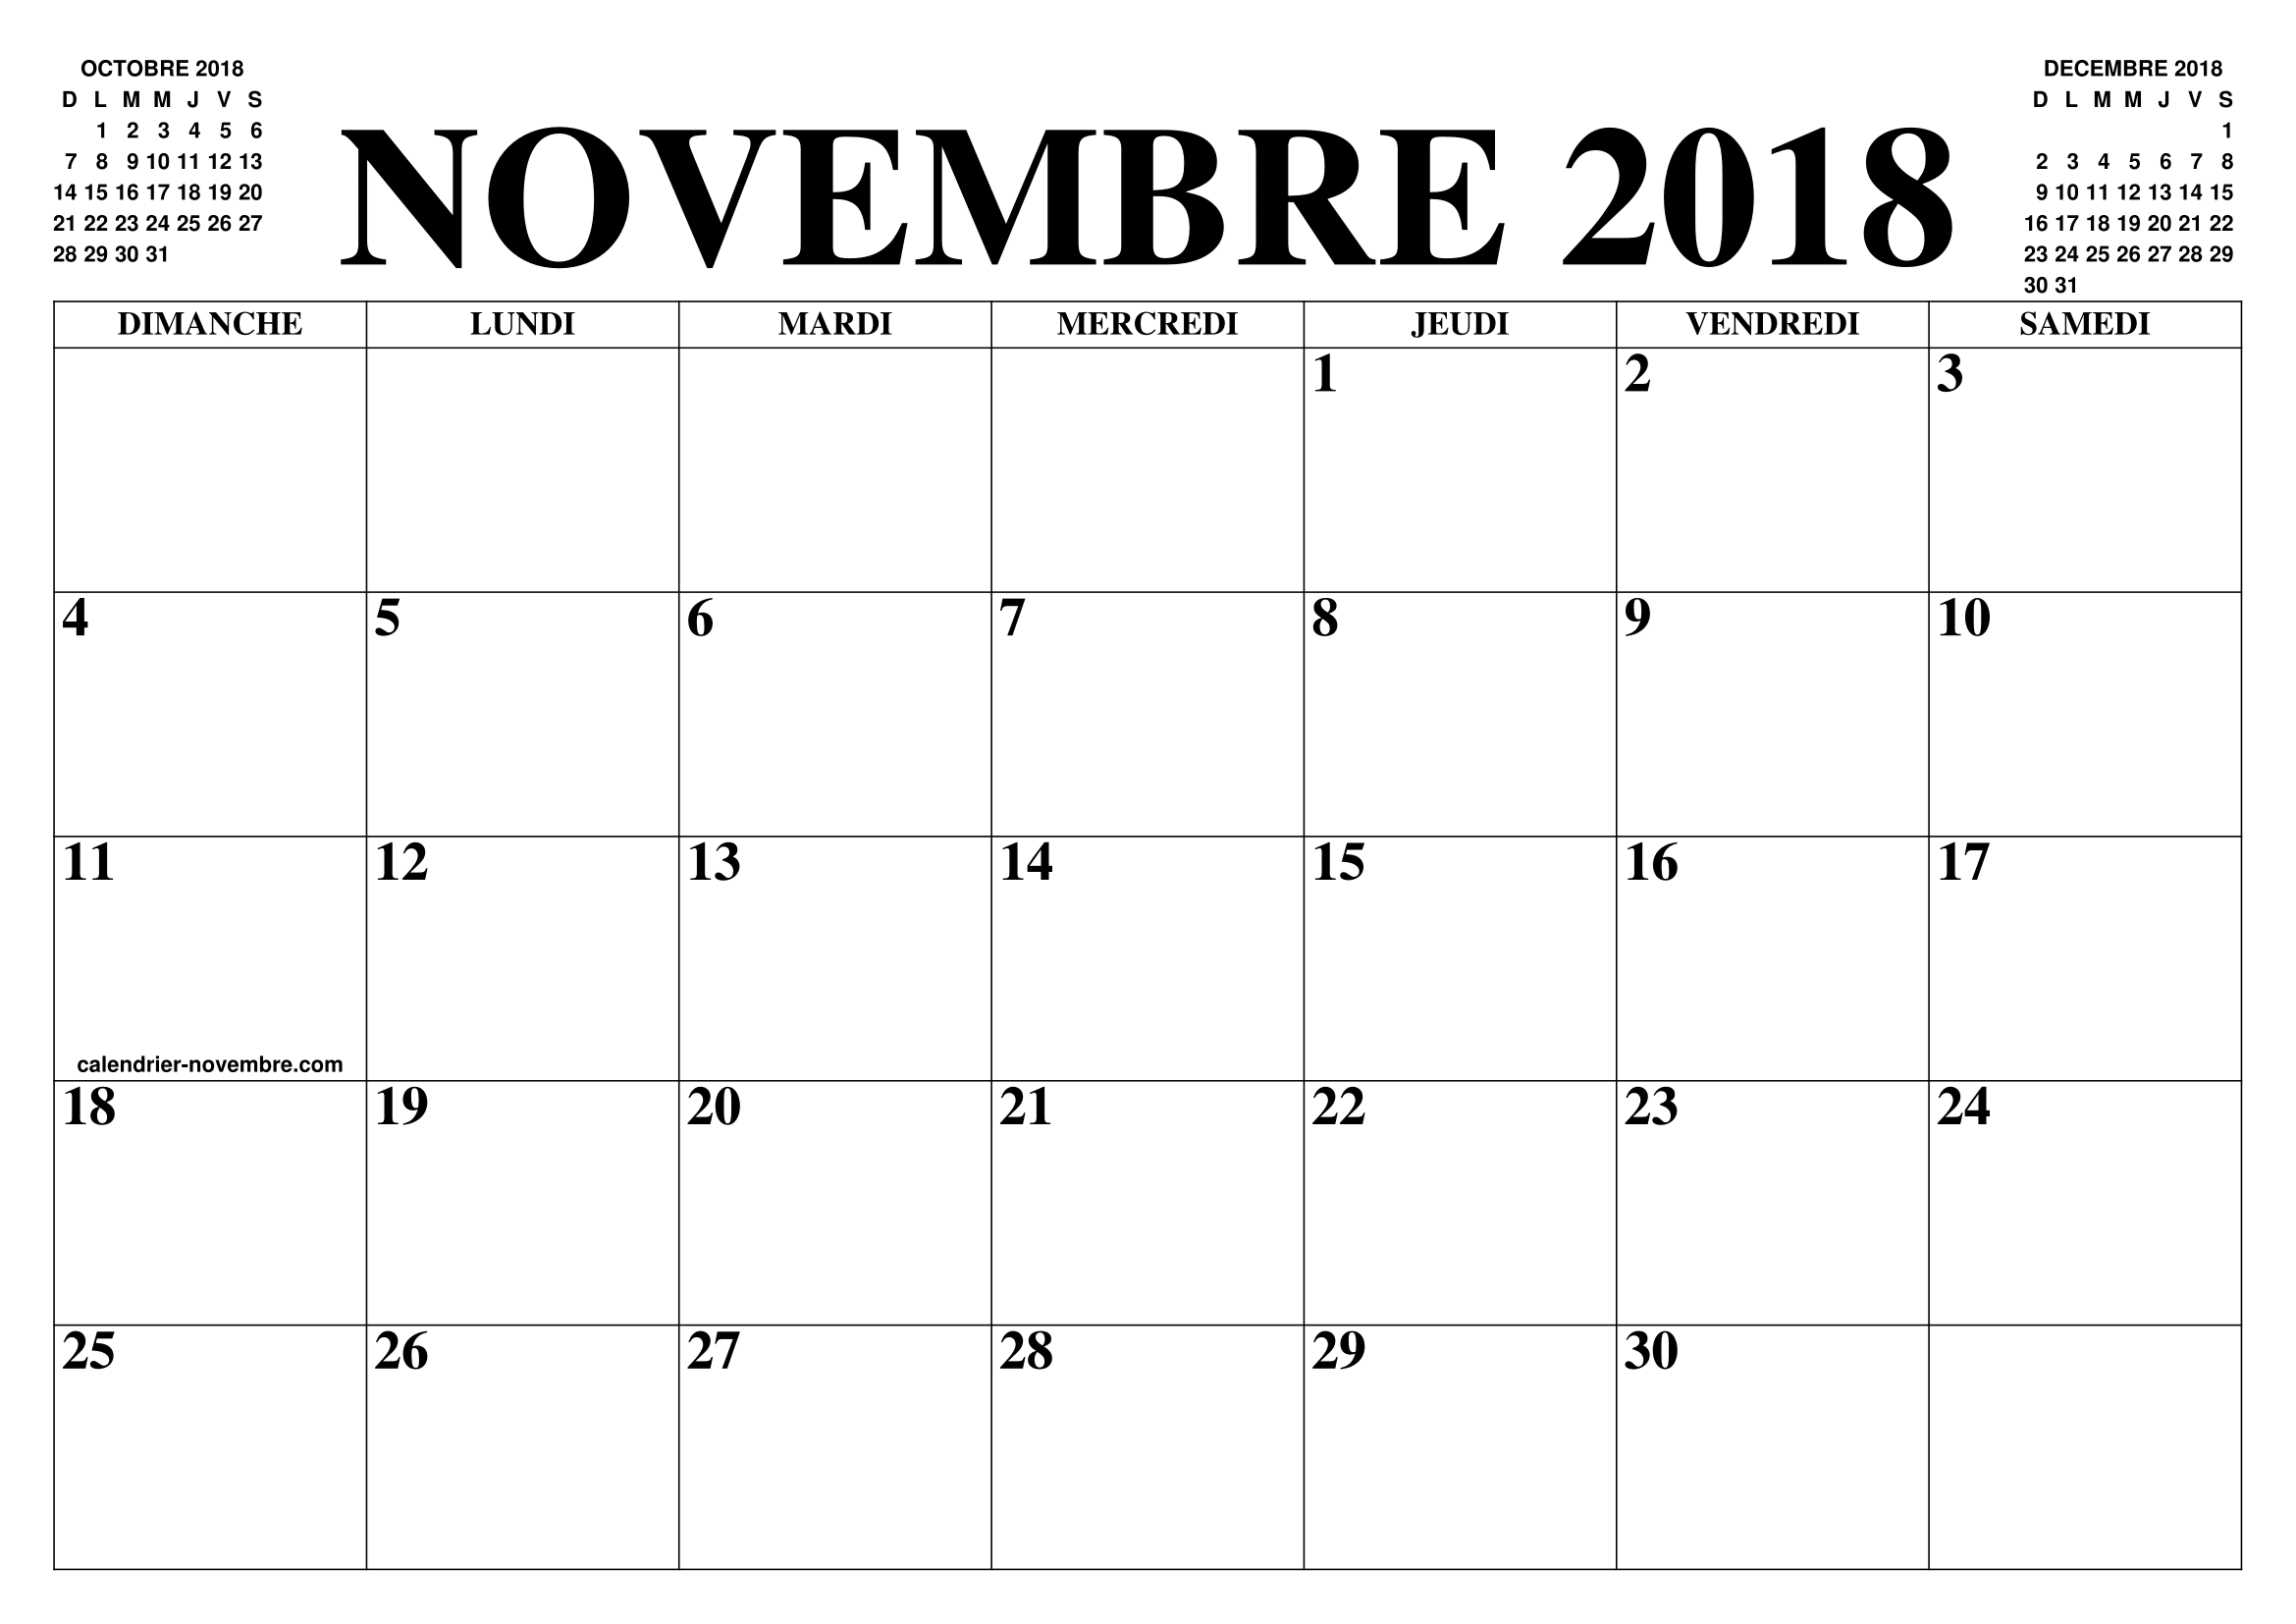 calendrier novembre 2018 2019 le calendrier du mois de novembre 2018 2019 gratuit a. Black Bedroom Furniture Sets. Home Design Ideas